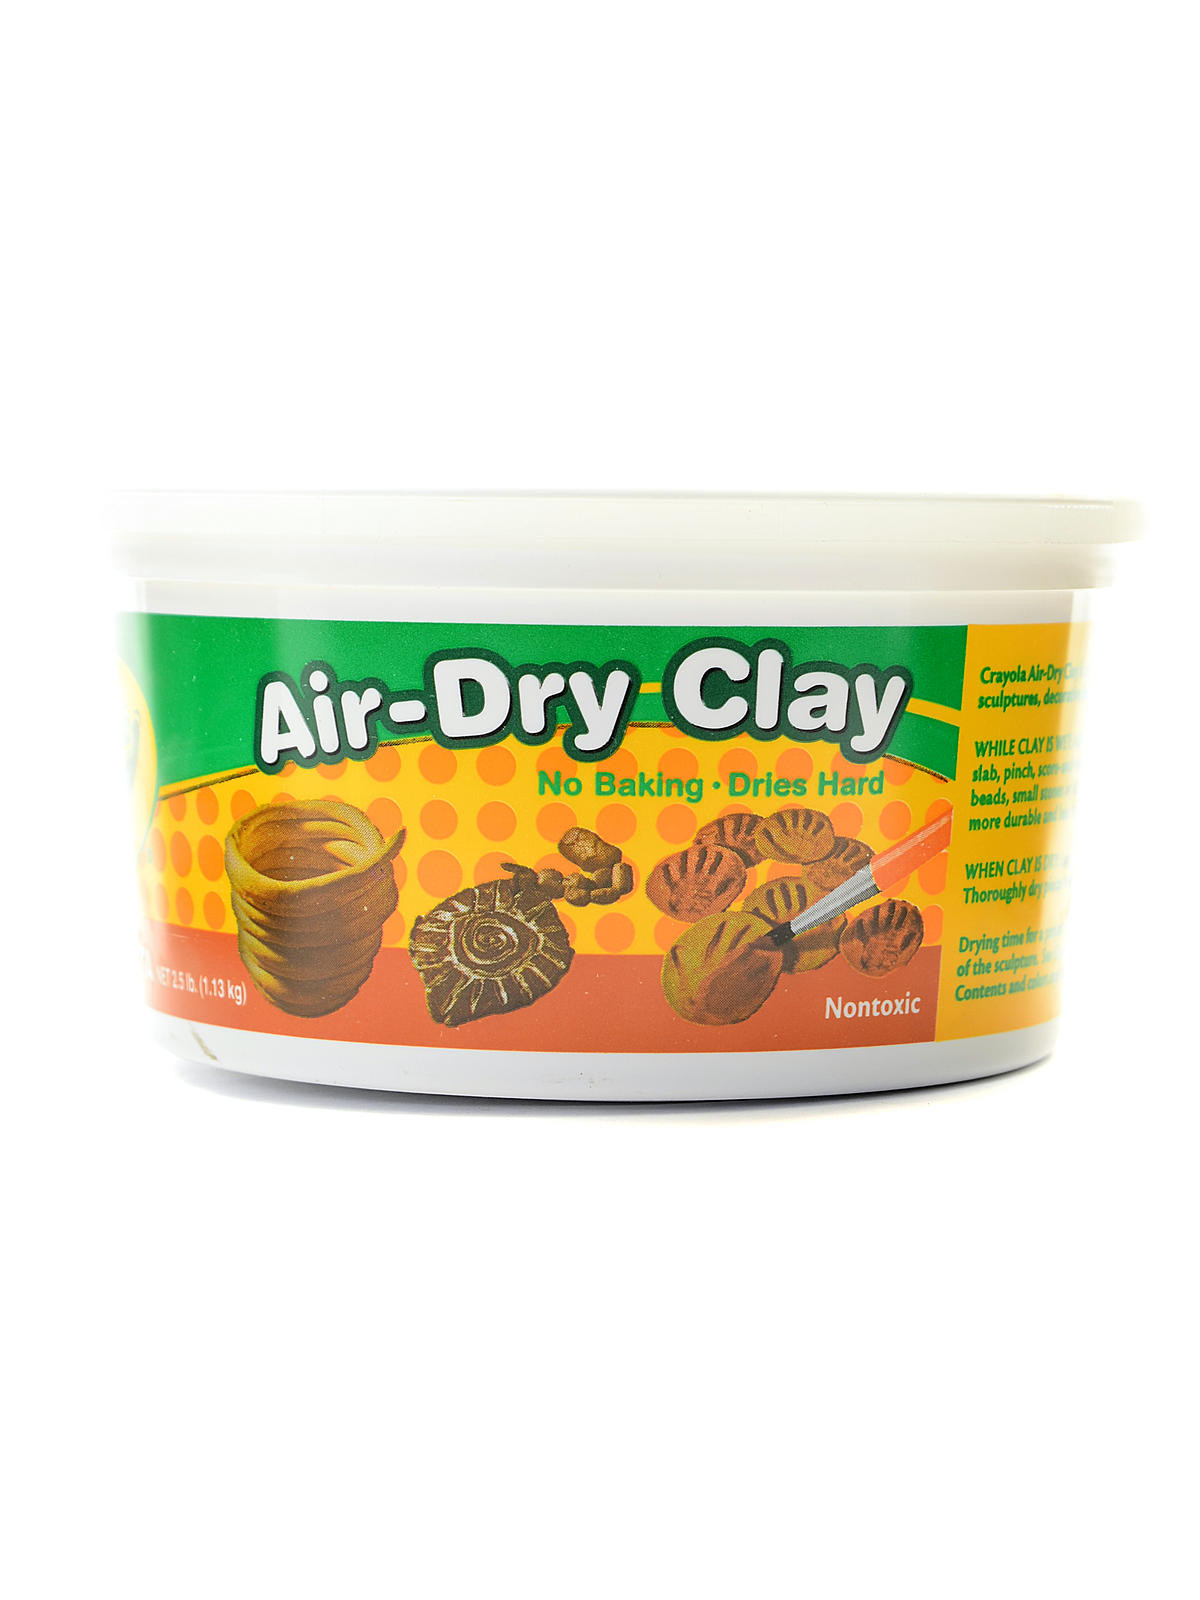 Lovely Crayola Air Dry Clay Air Dry Polymer Clay Of Best Of 8pcs Play Doh Fimo Polymer Clay Light soft Modeling Clay Air Dry Polymer Clay